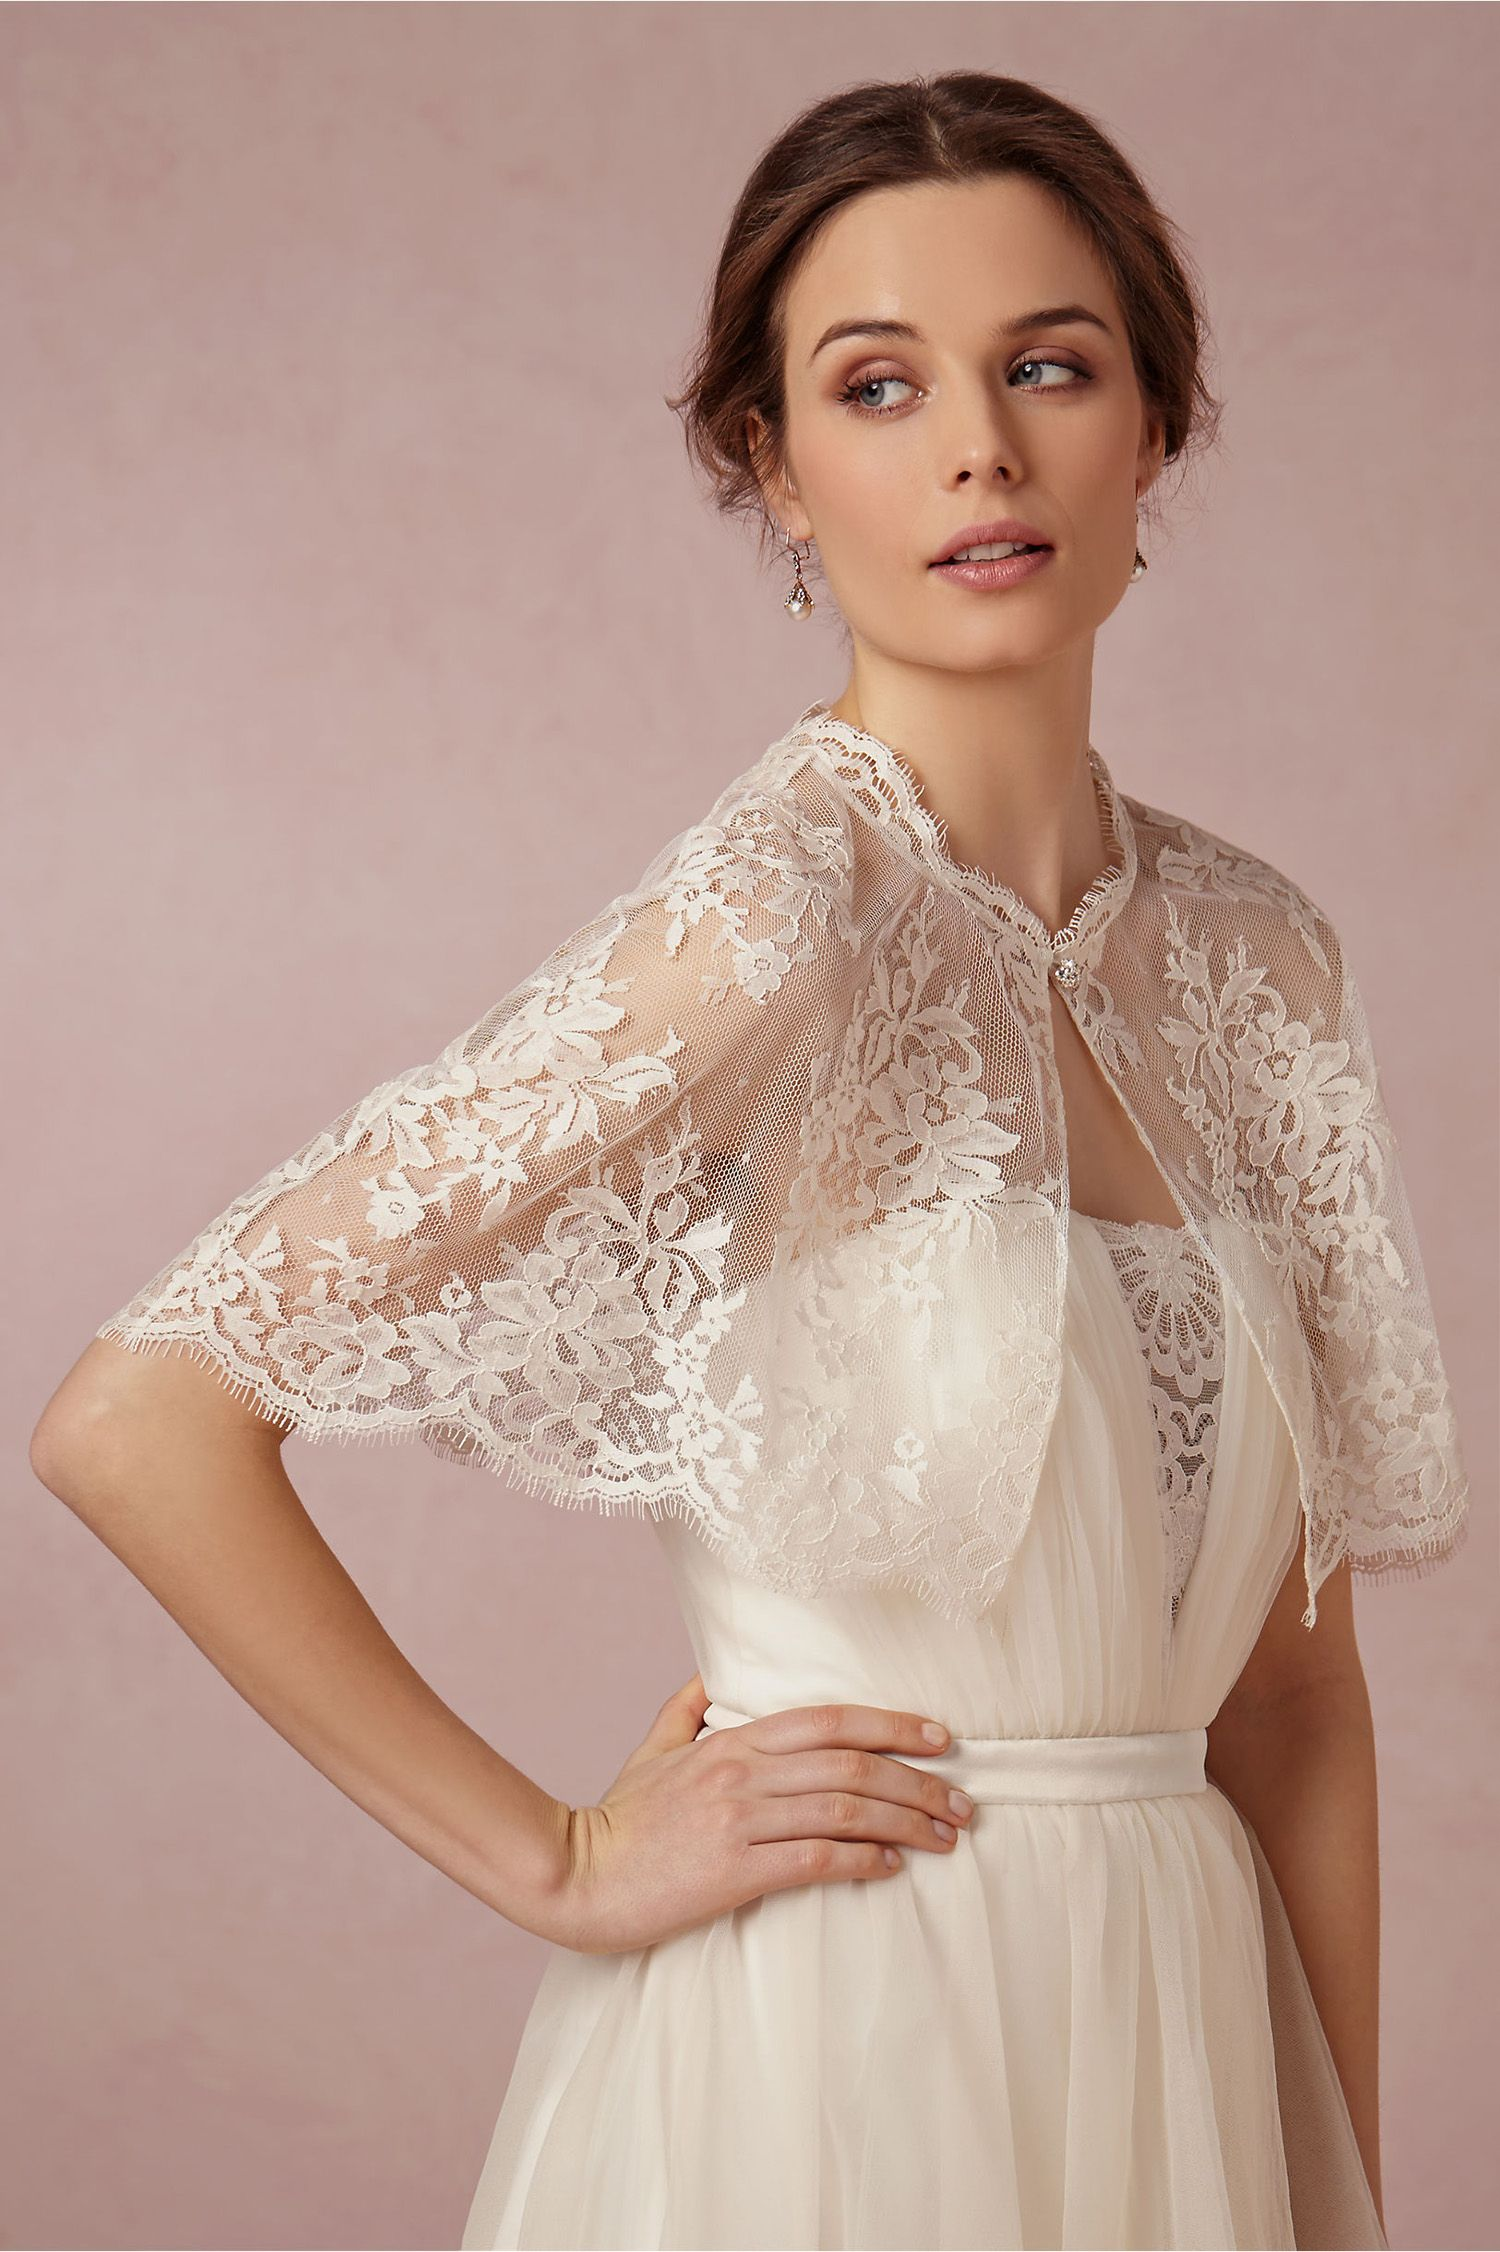 Bridal Coverup Wrap Shrug Wedding Dress Lace White